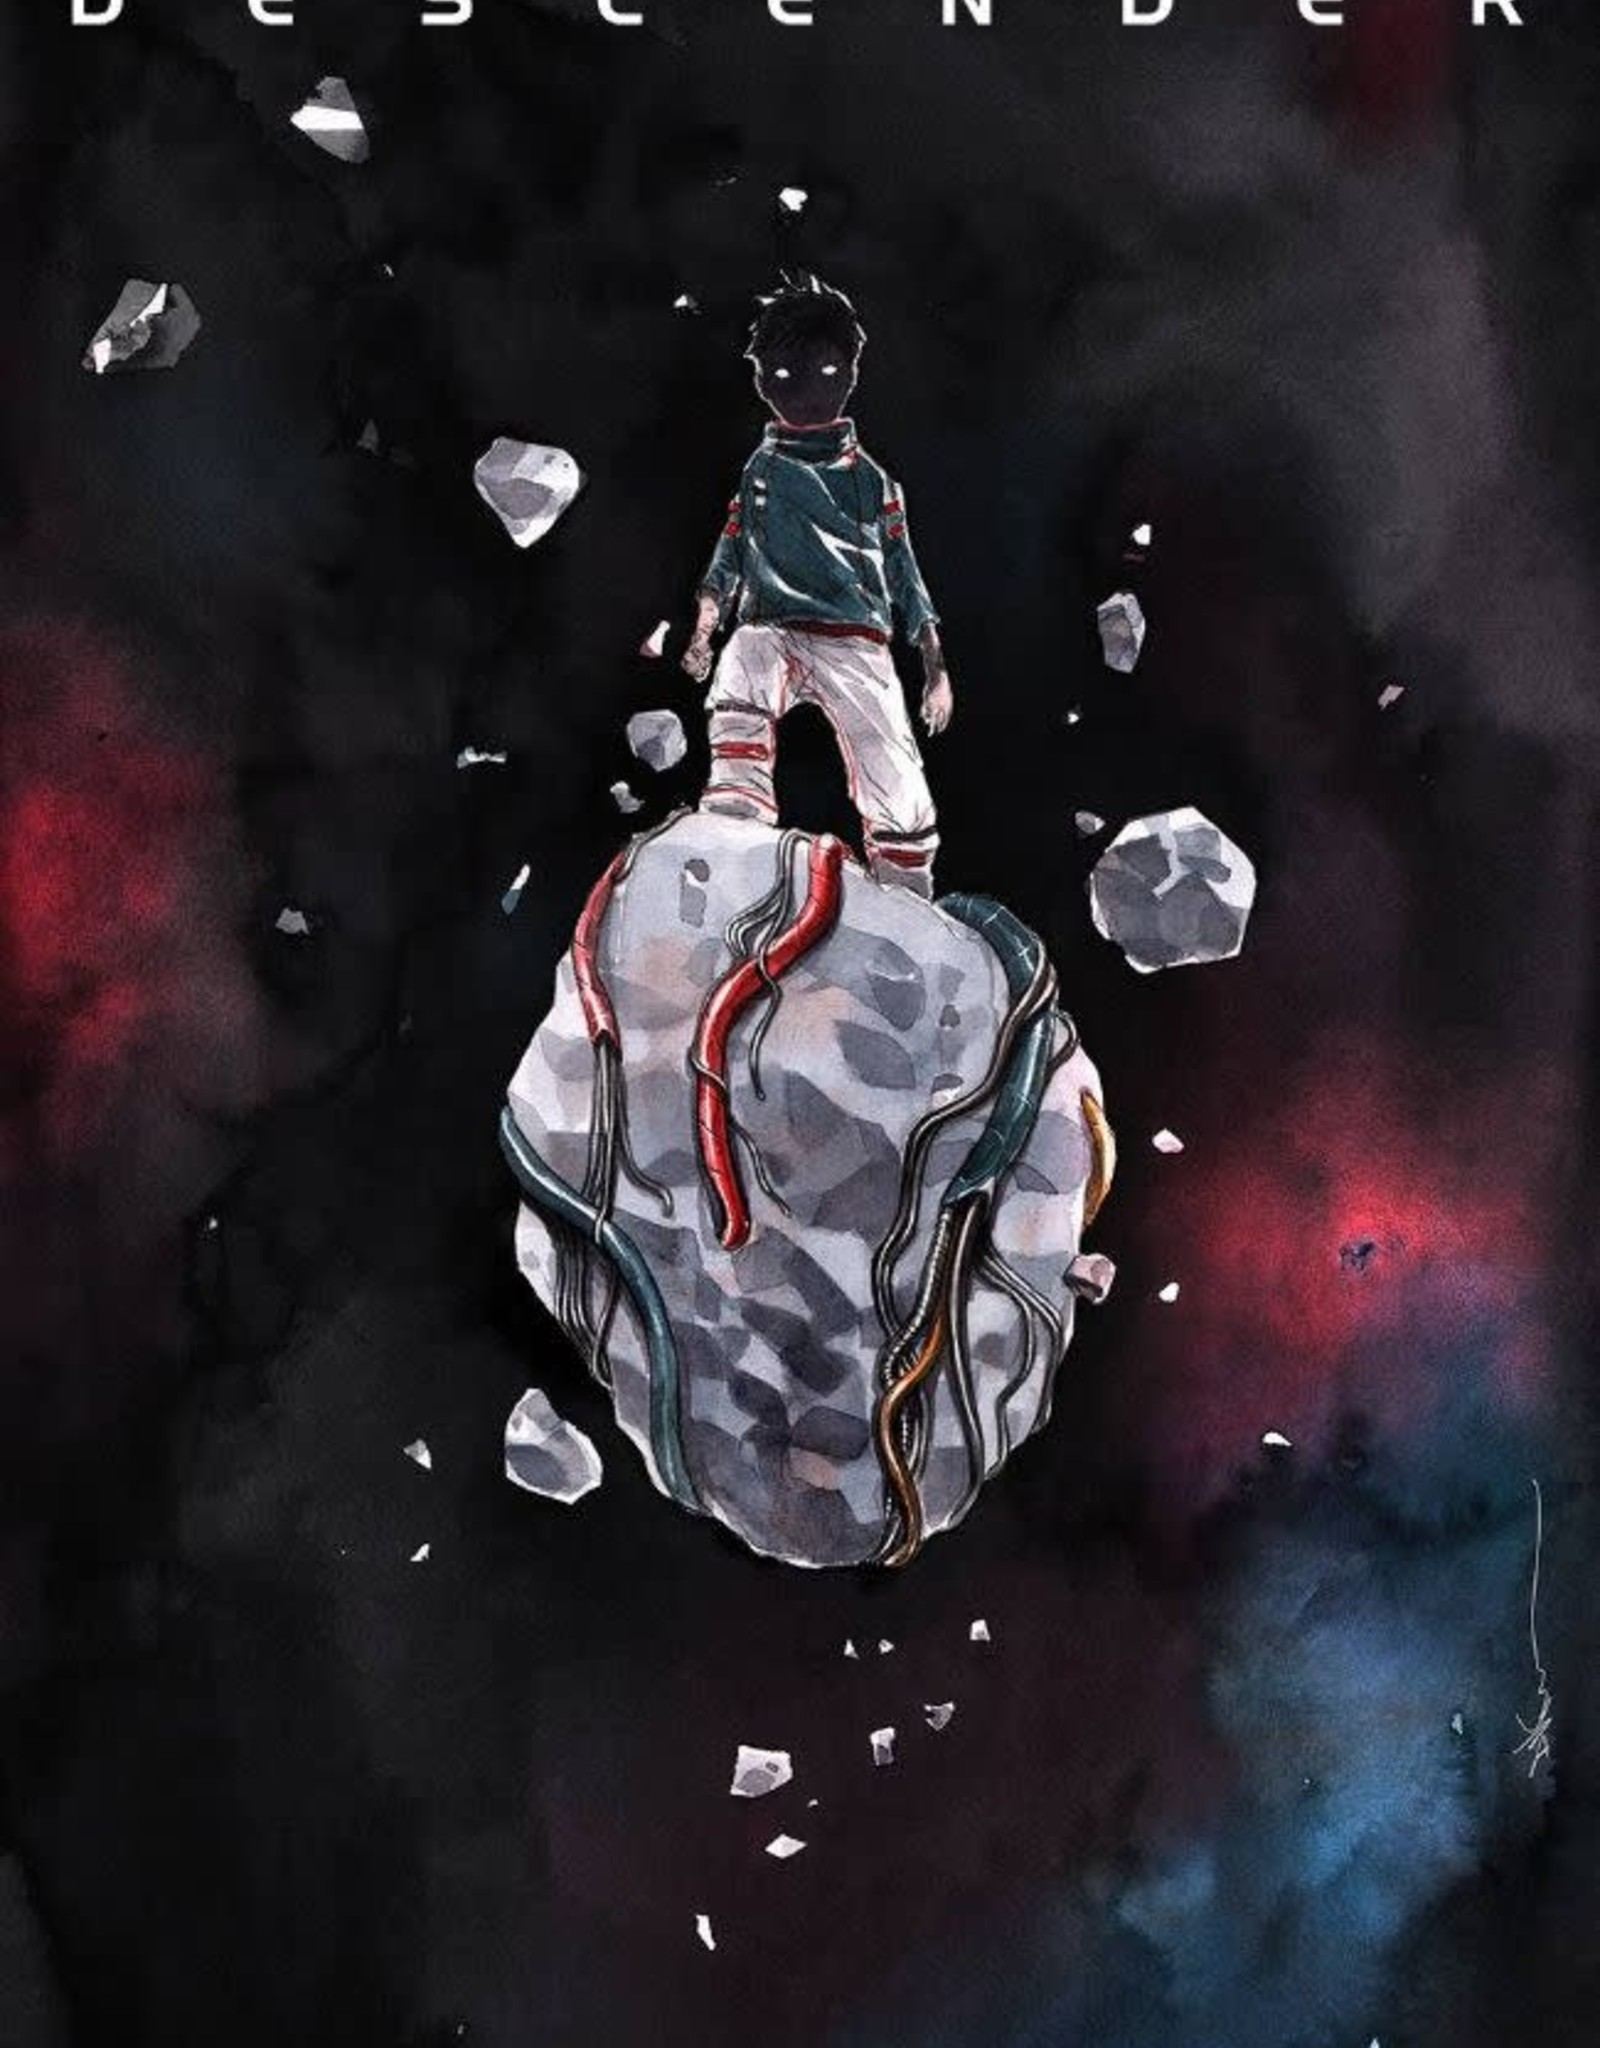 Image Comics Descender Vol 04